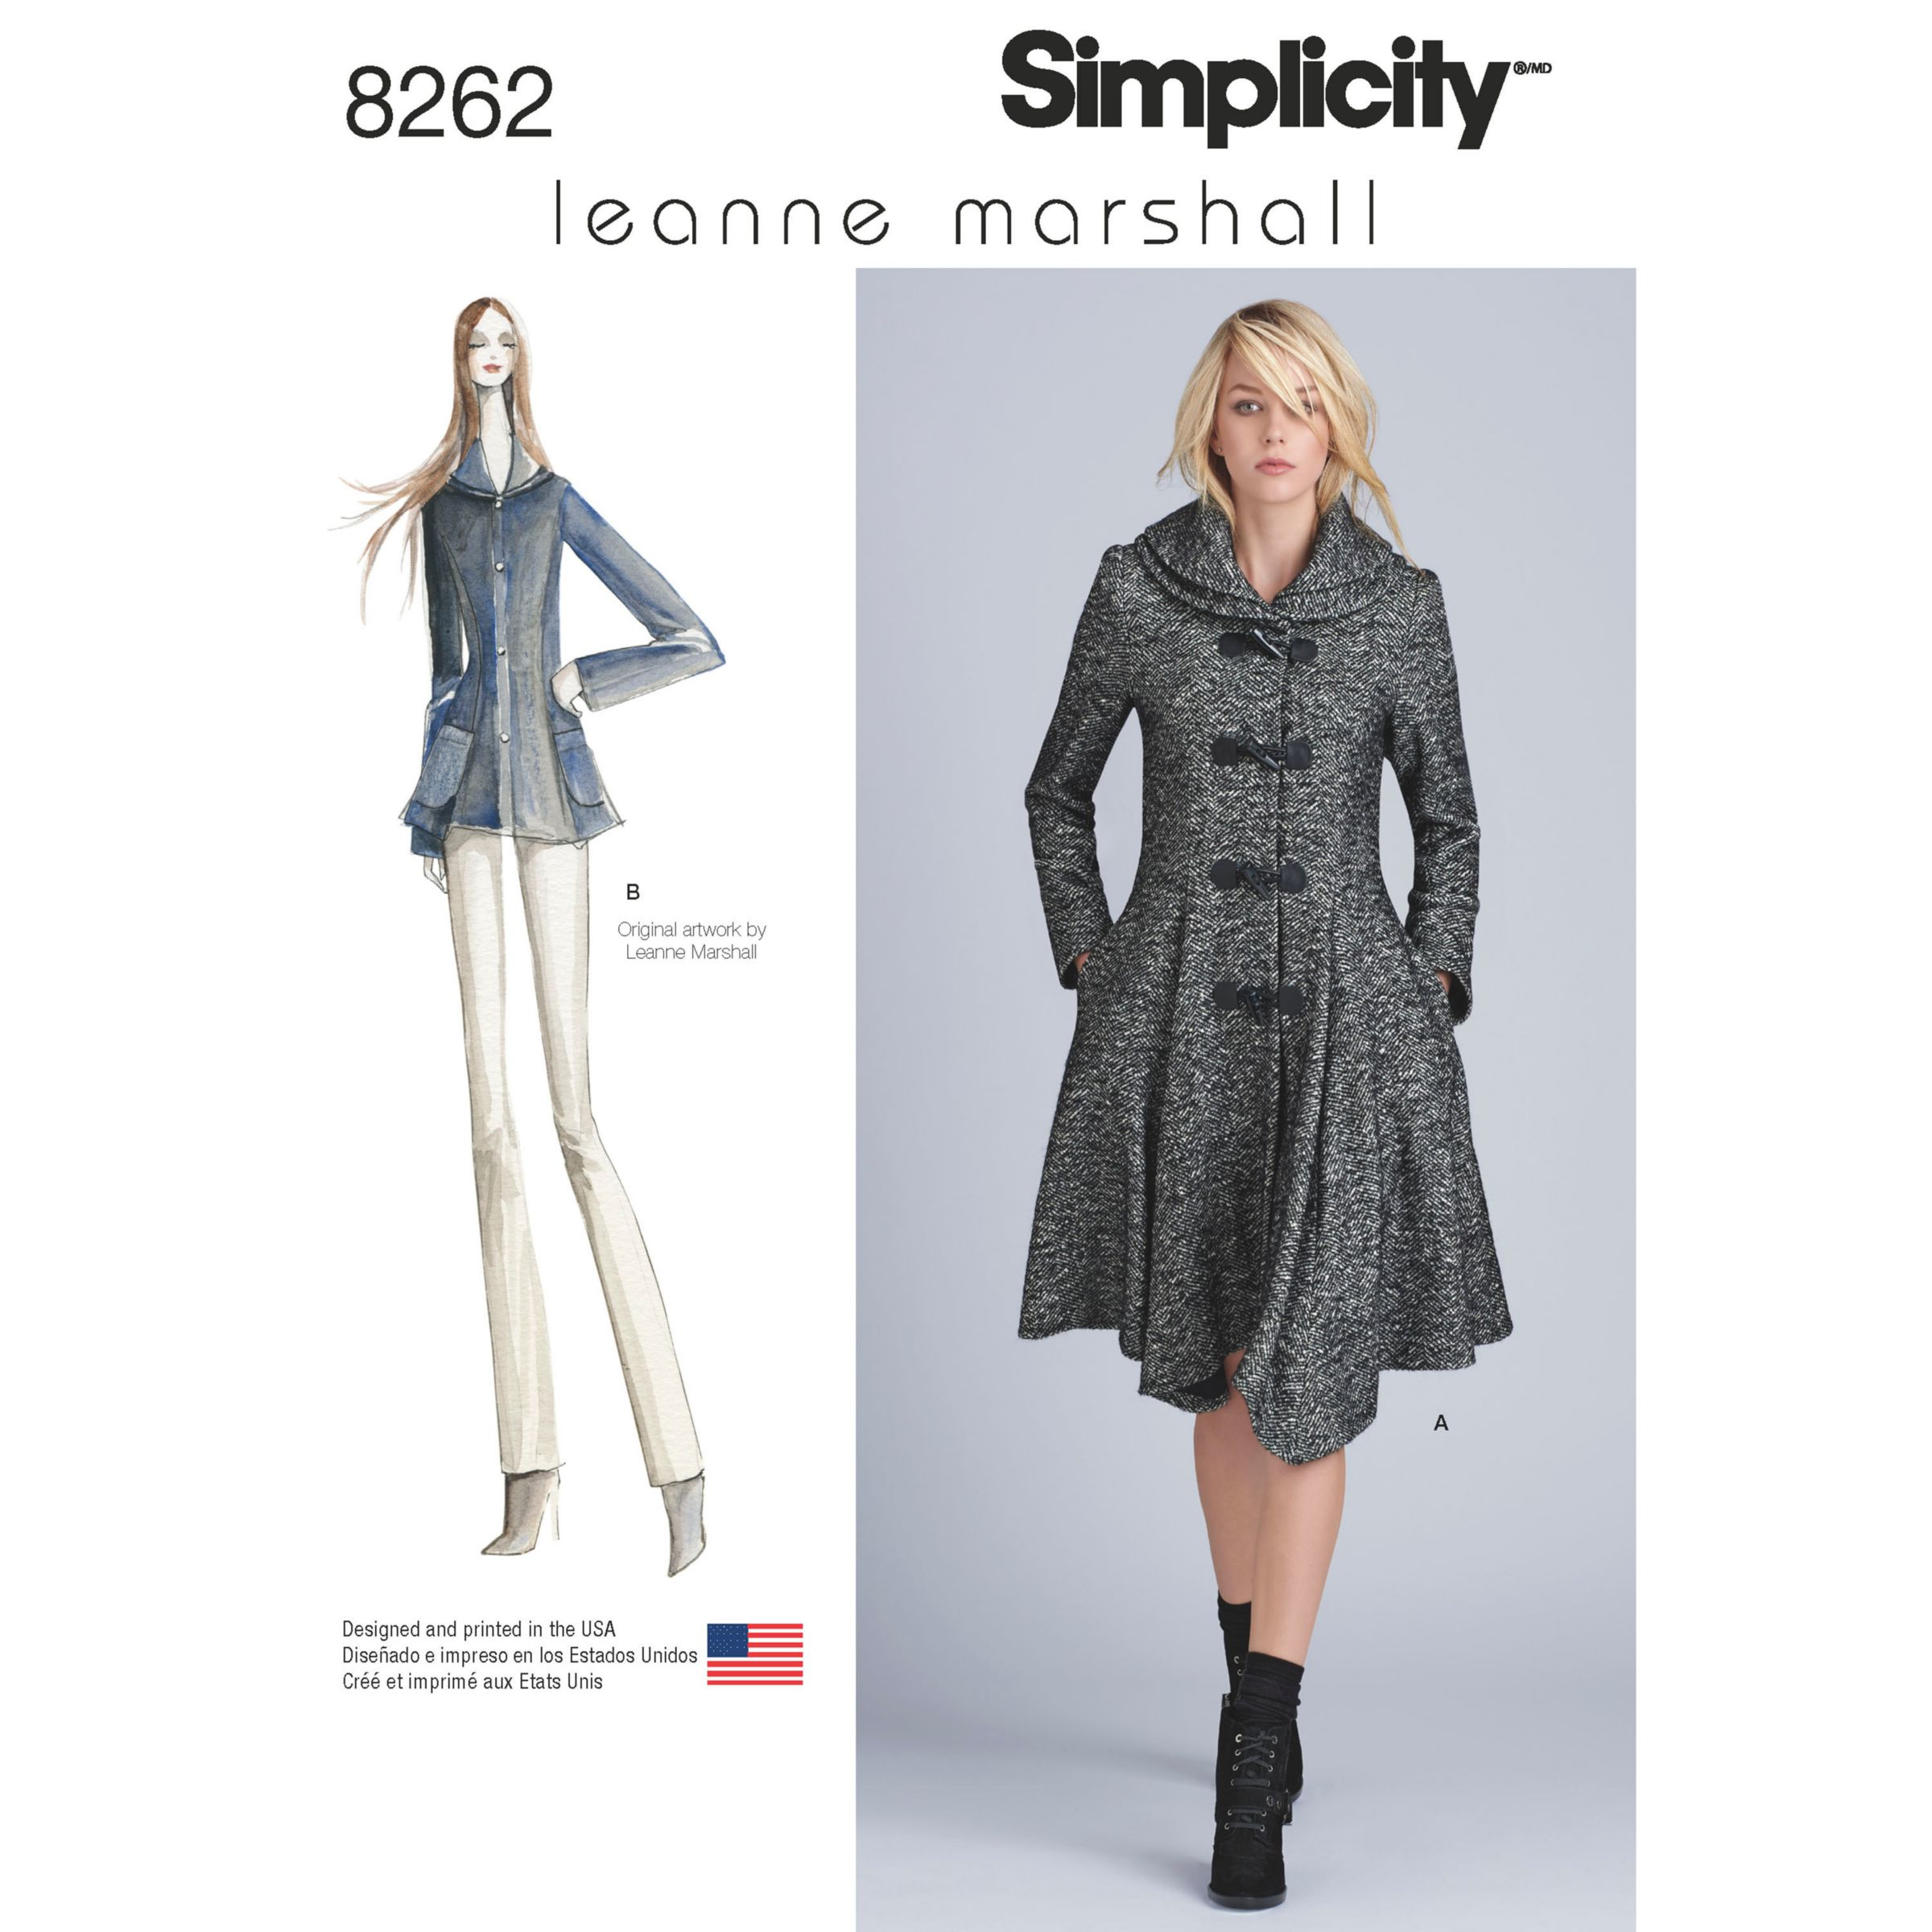 Simplicity Simplicity Misses' Women's Leanne Marshall Coat and Jacket Sewing Pattern, 8262